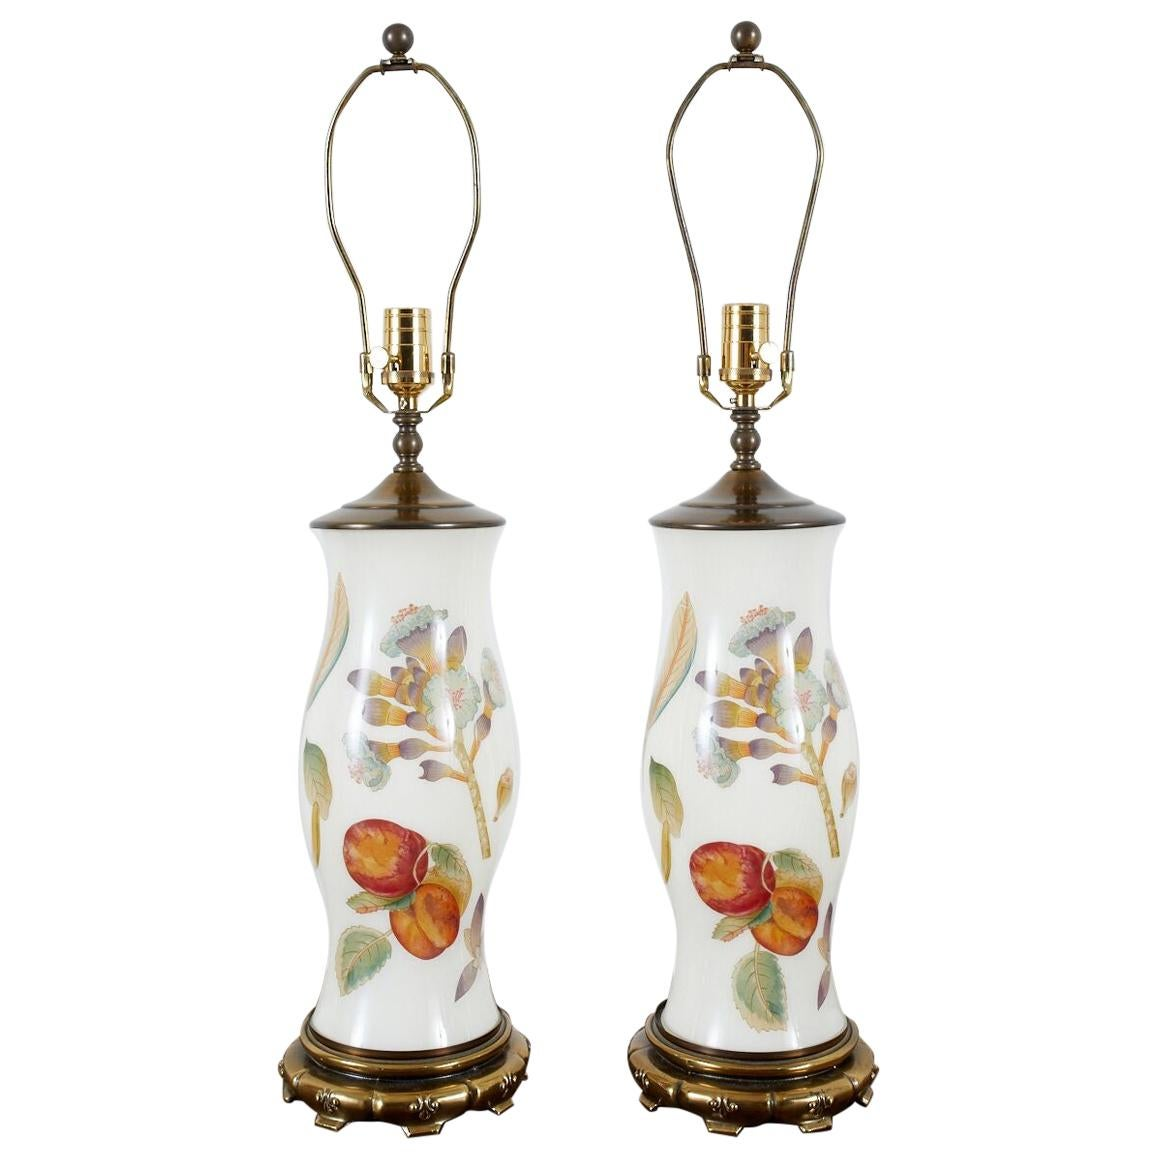 Pair of English Decalcomania Regency Style Table Lamps